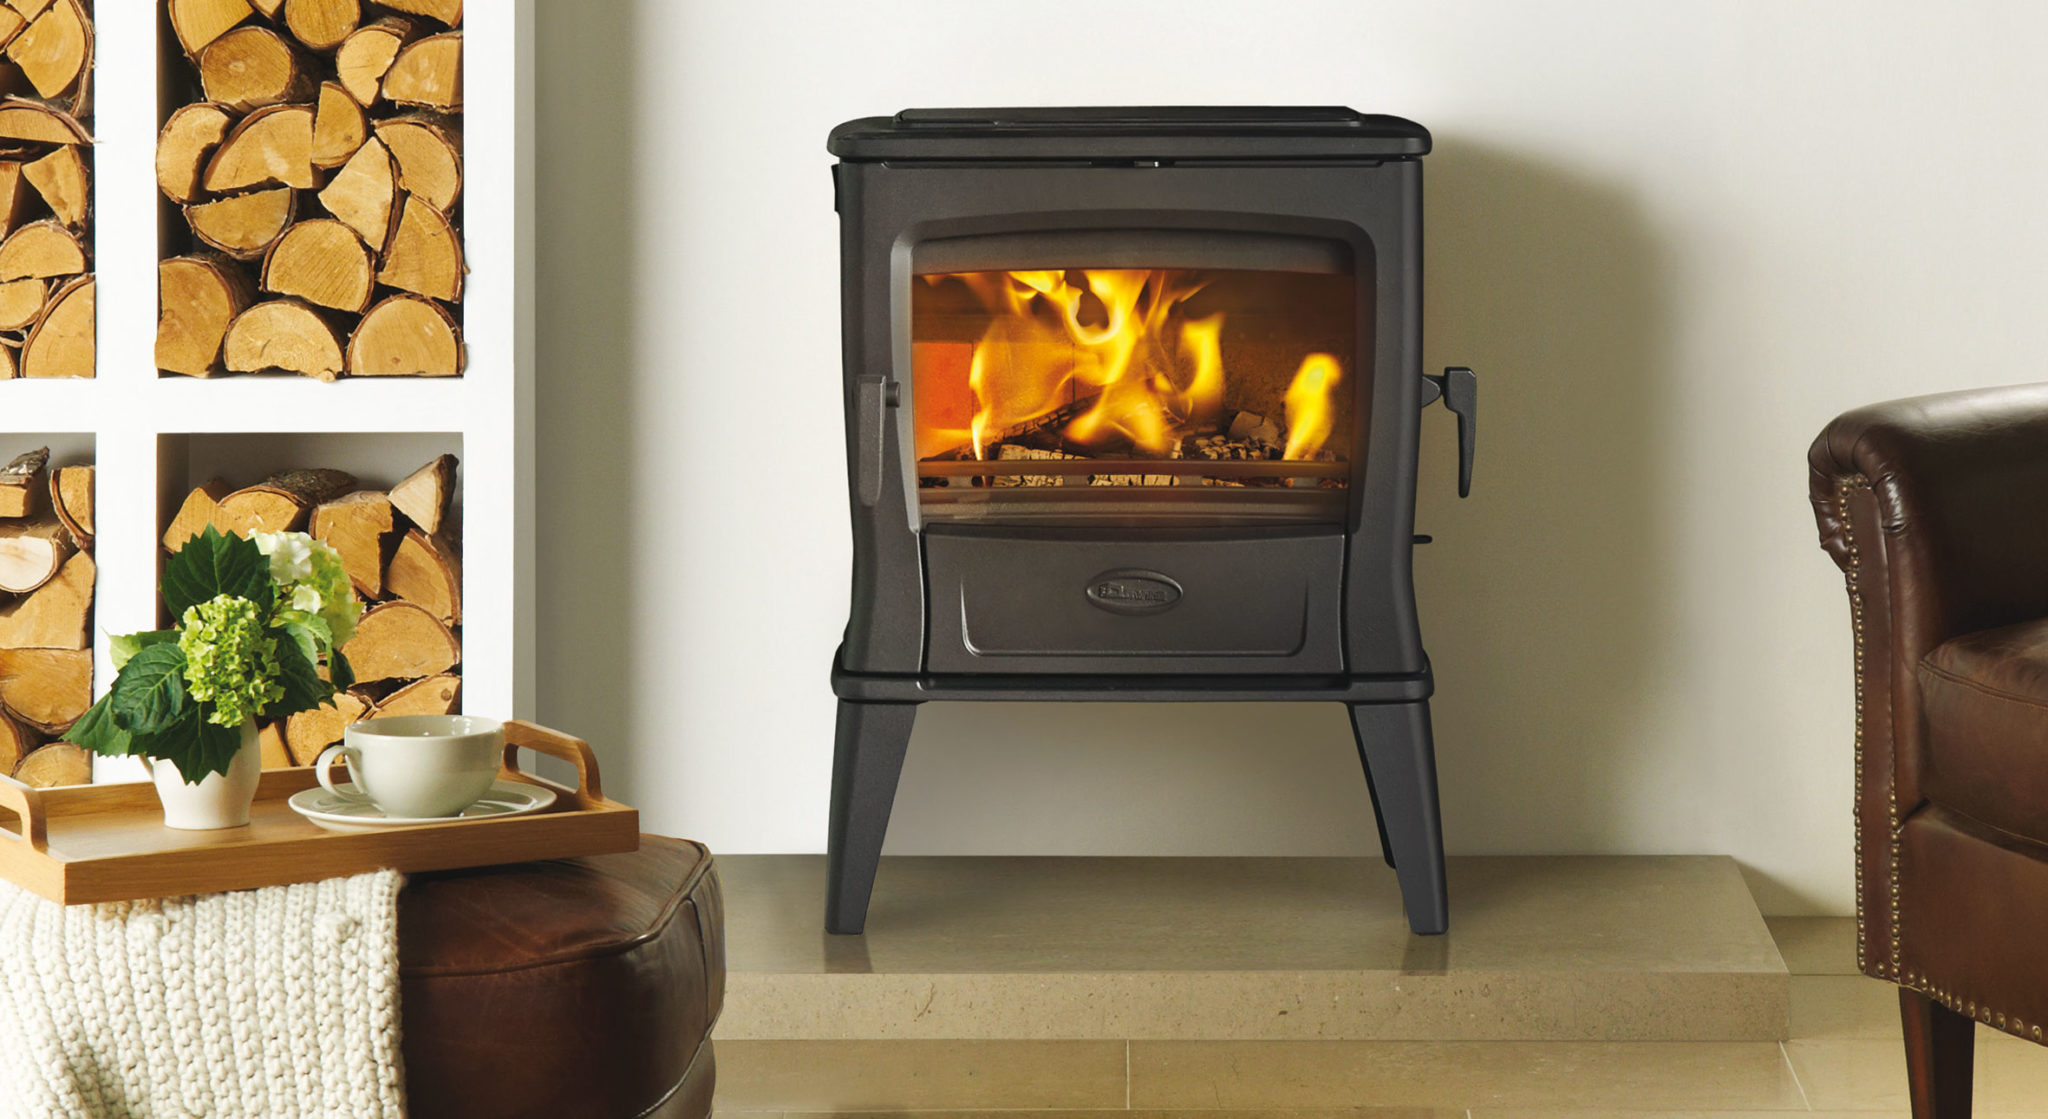 All new wood burning stove with a powerful heat output!